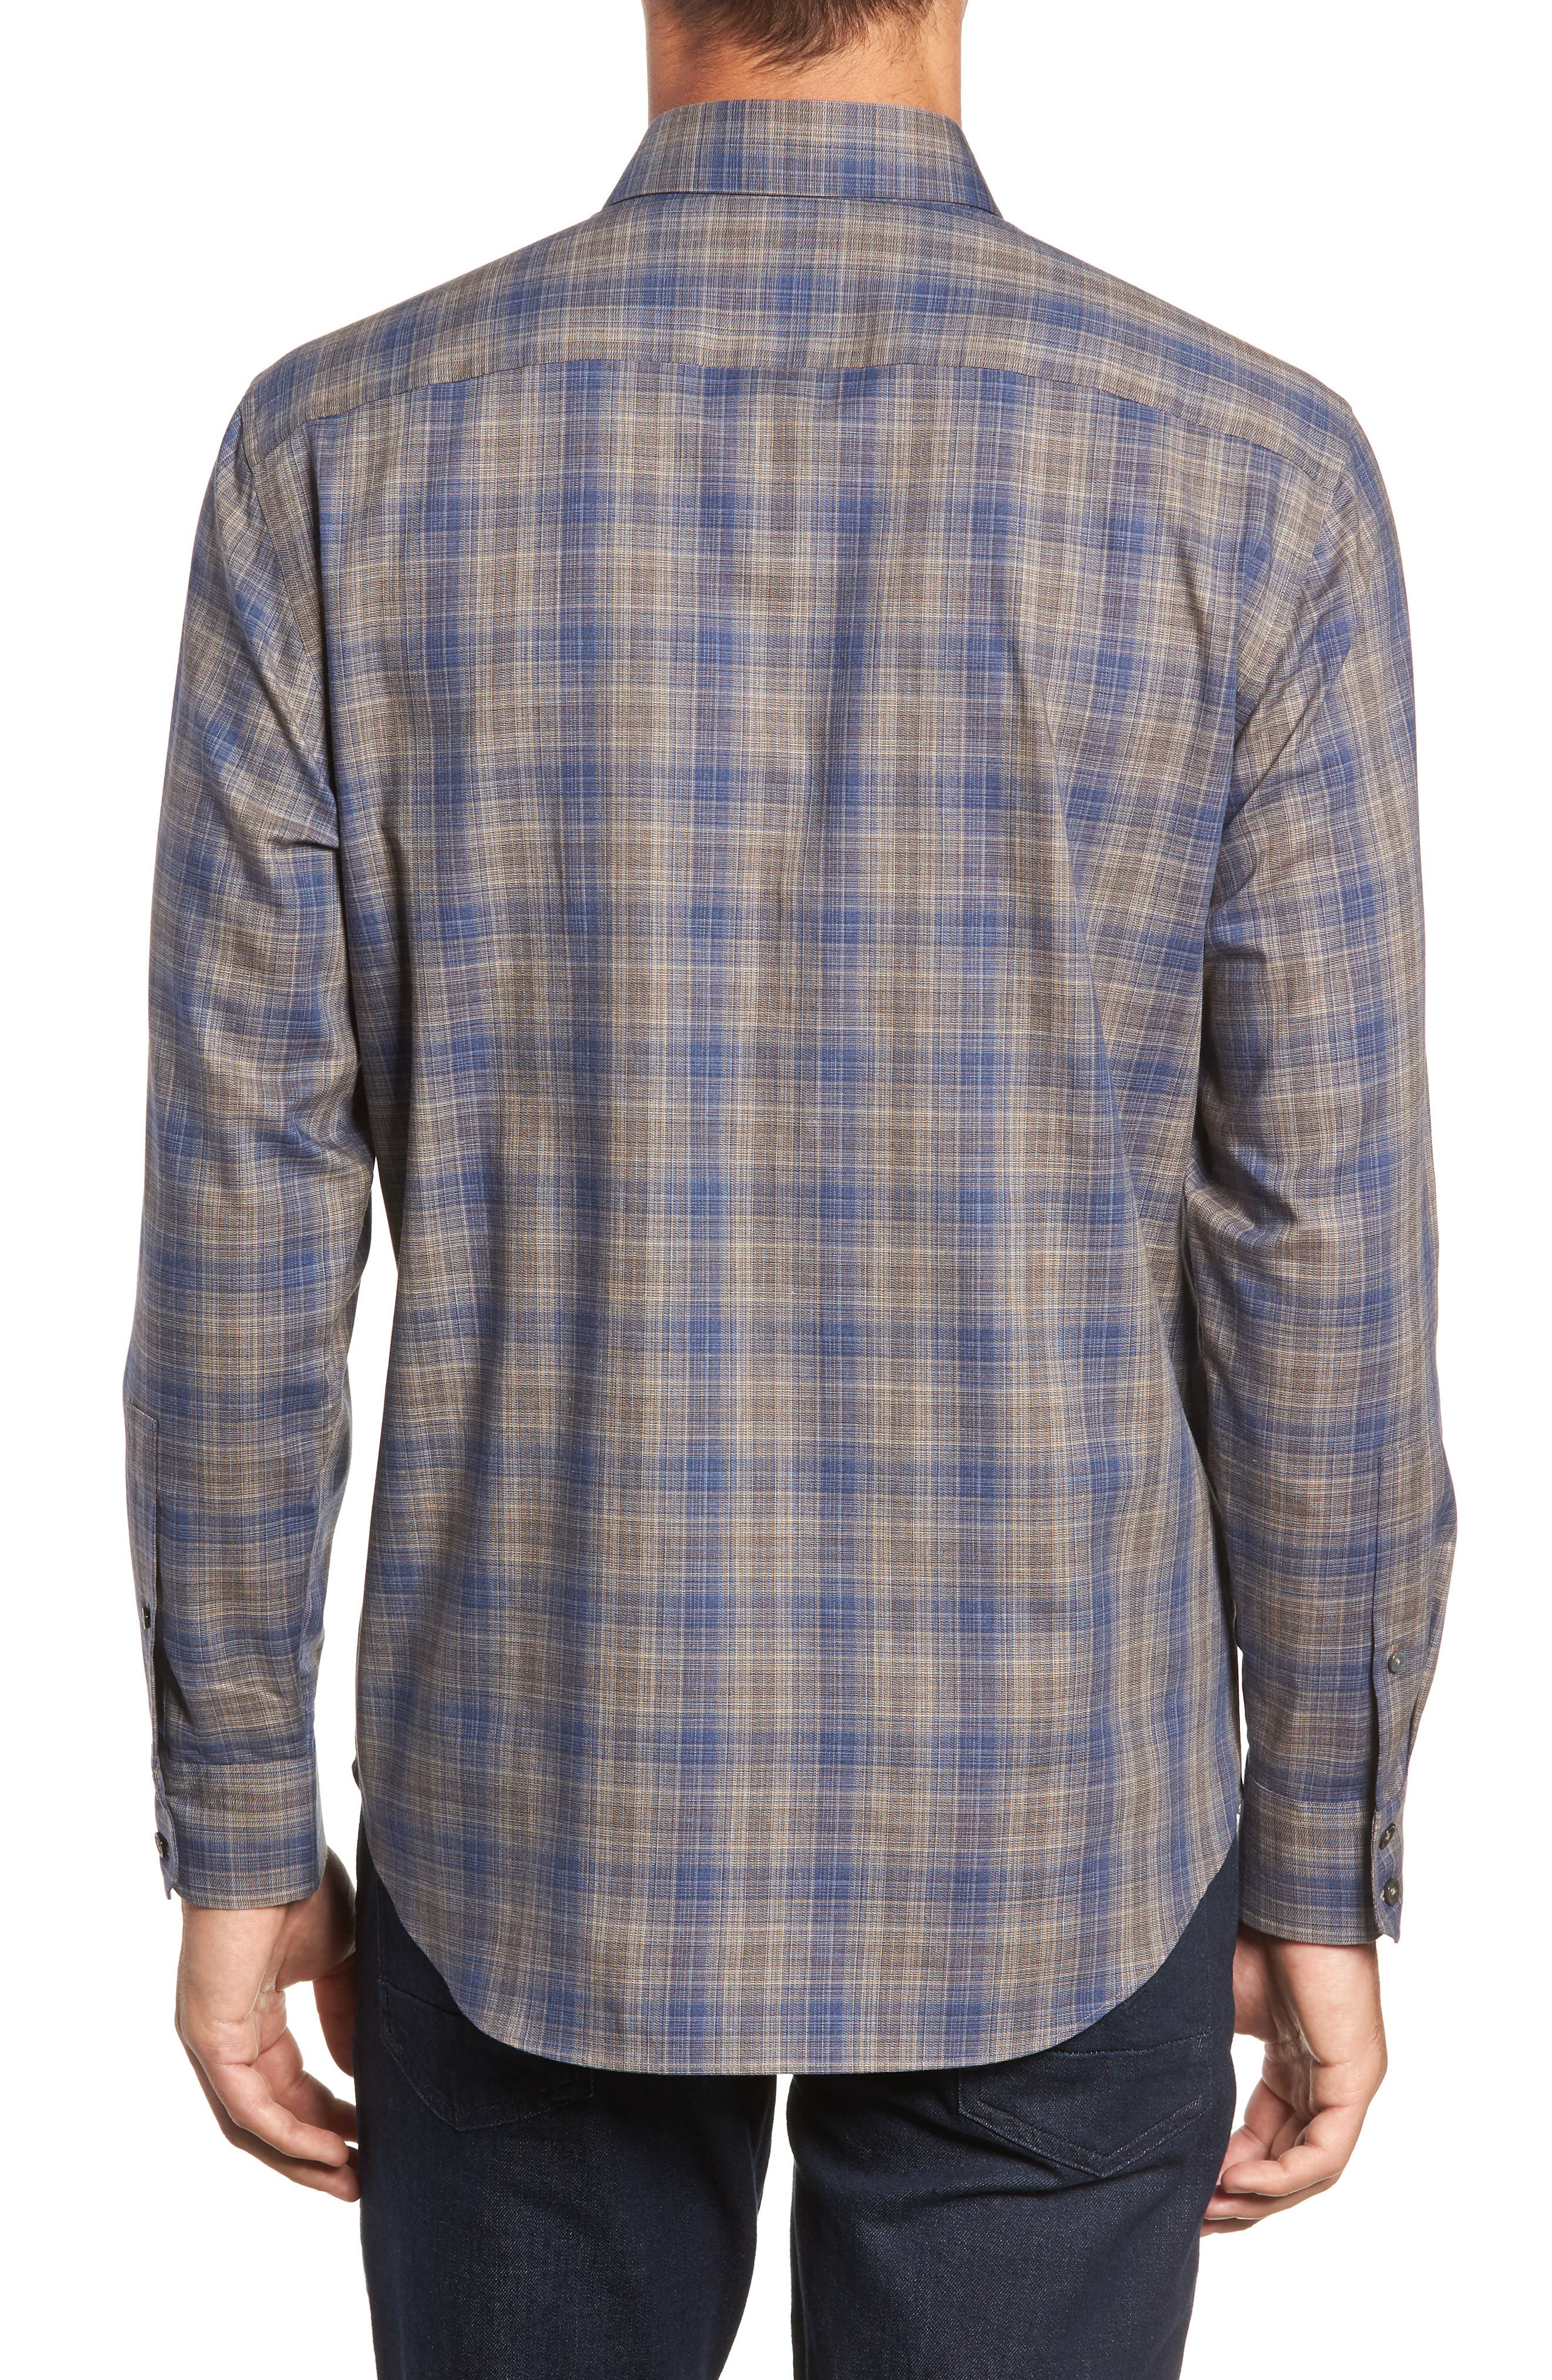 Compton Regular Fit Check Sport Shirt,                             Alternate thumbnail 3, color,                             SAND